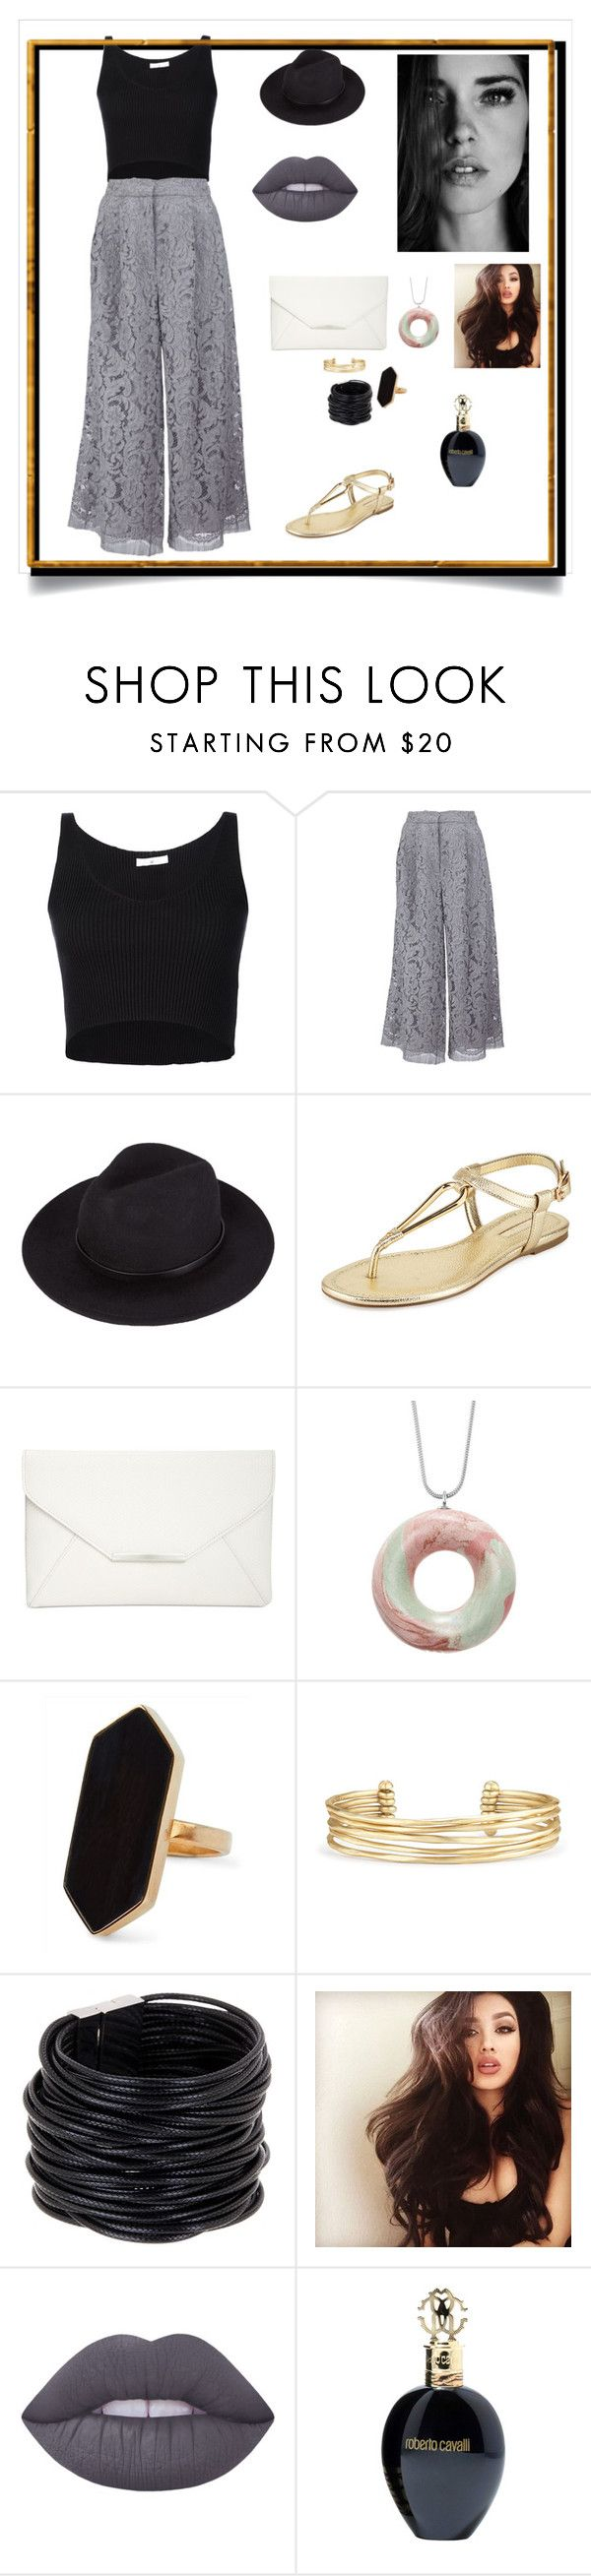 """Untitled #229"" by khadijaer ❤ liked on Polyvore featuring 321, ADAM, BCBGeneration, Style & Co., Jaeger, Stella & Dot, Saachi, Lime Crime and Roberto Cavalli"